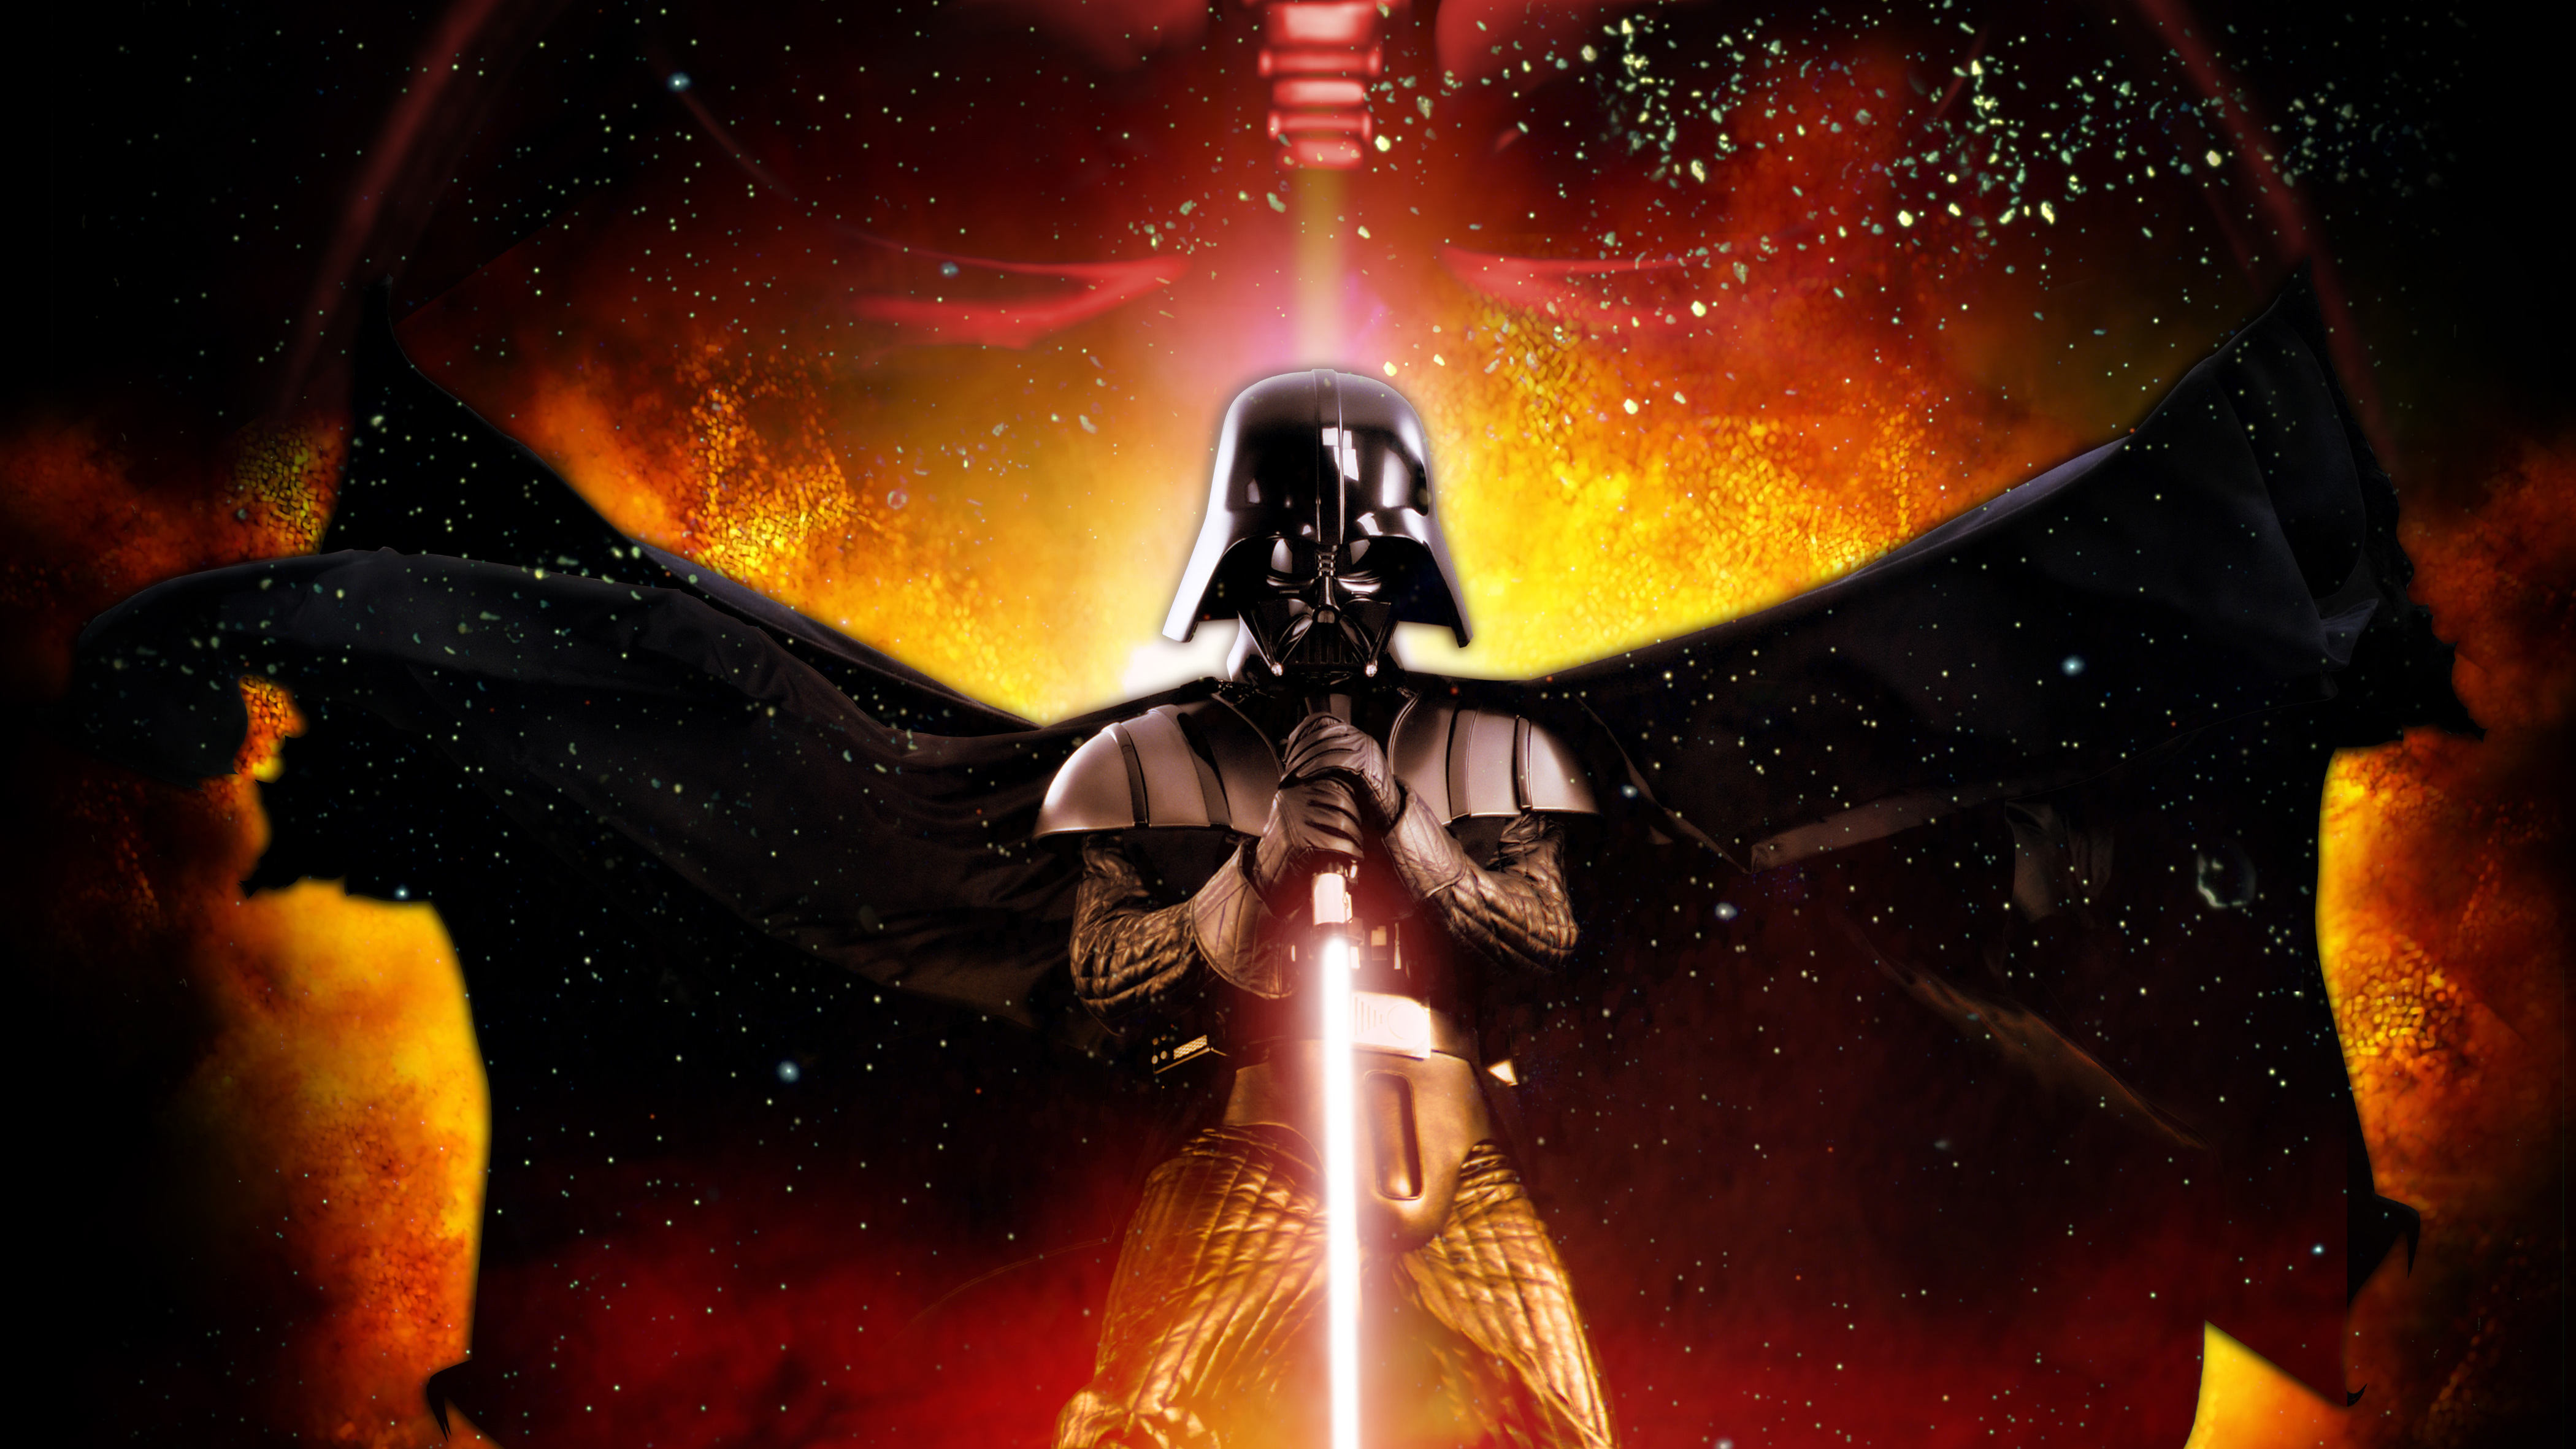 Darth Vader With Lightsaber Wallpaper Hd Movies 4k Wallpapers Images Photos And Background